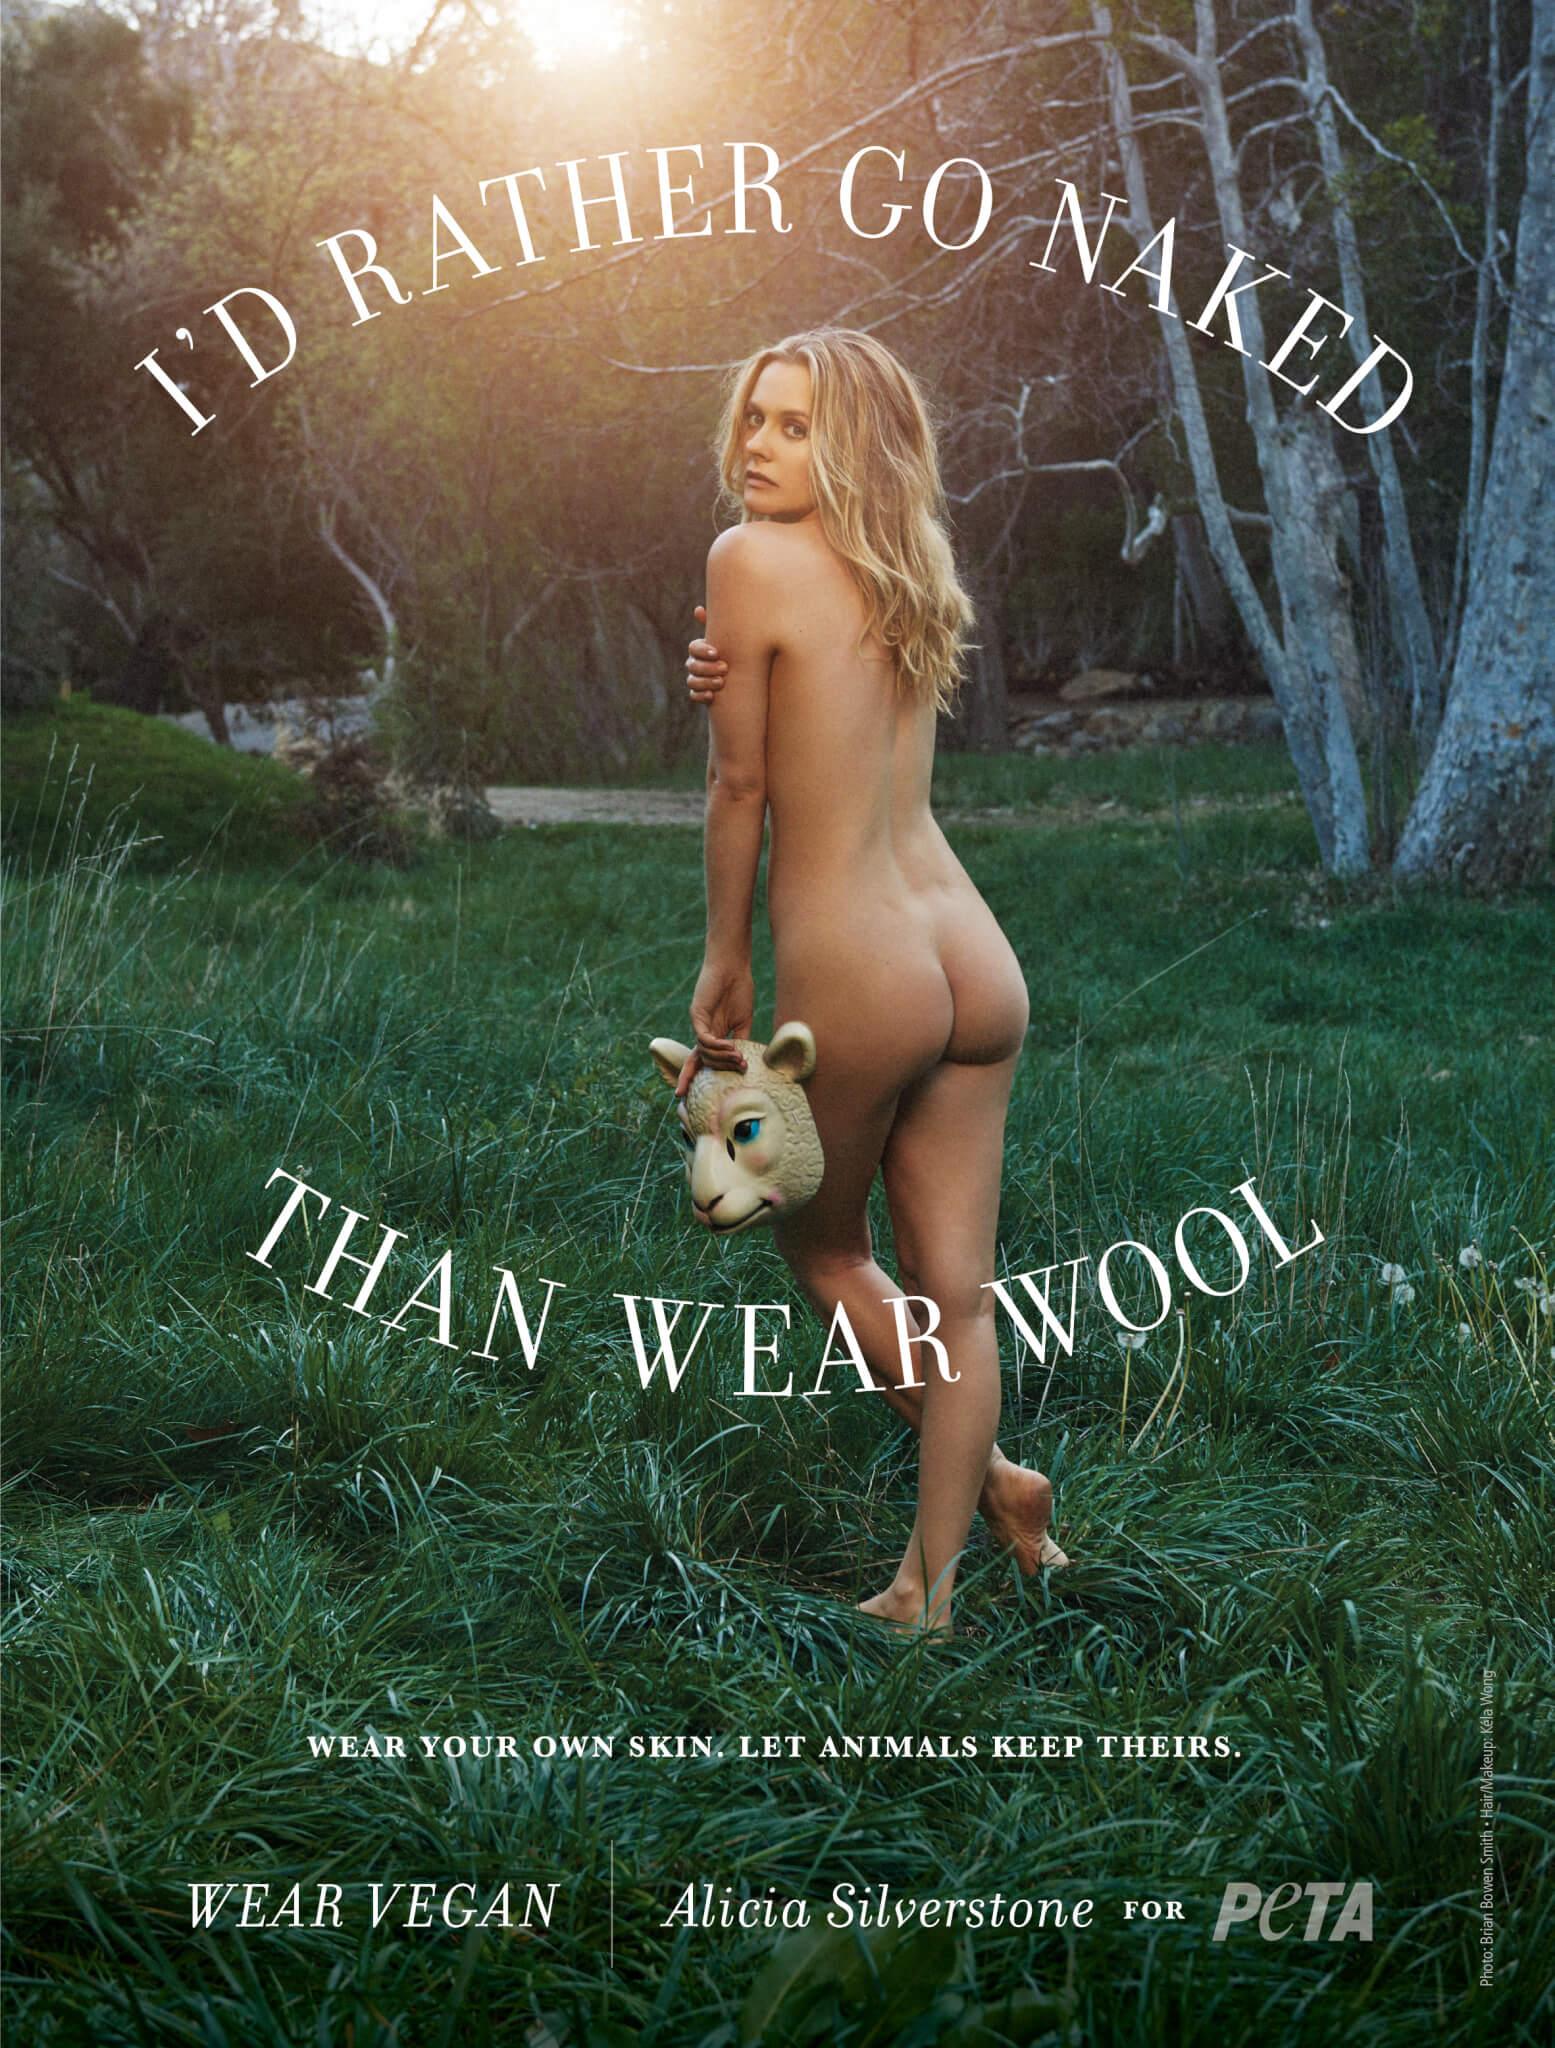 Alicia Silverstone Would Rather Go Naked Than Wear … Wool!